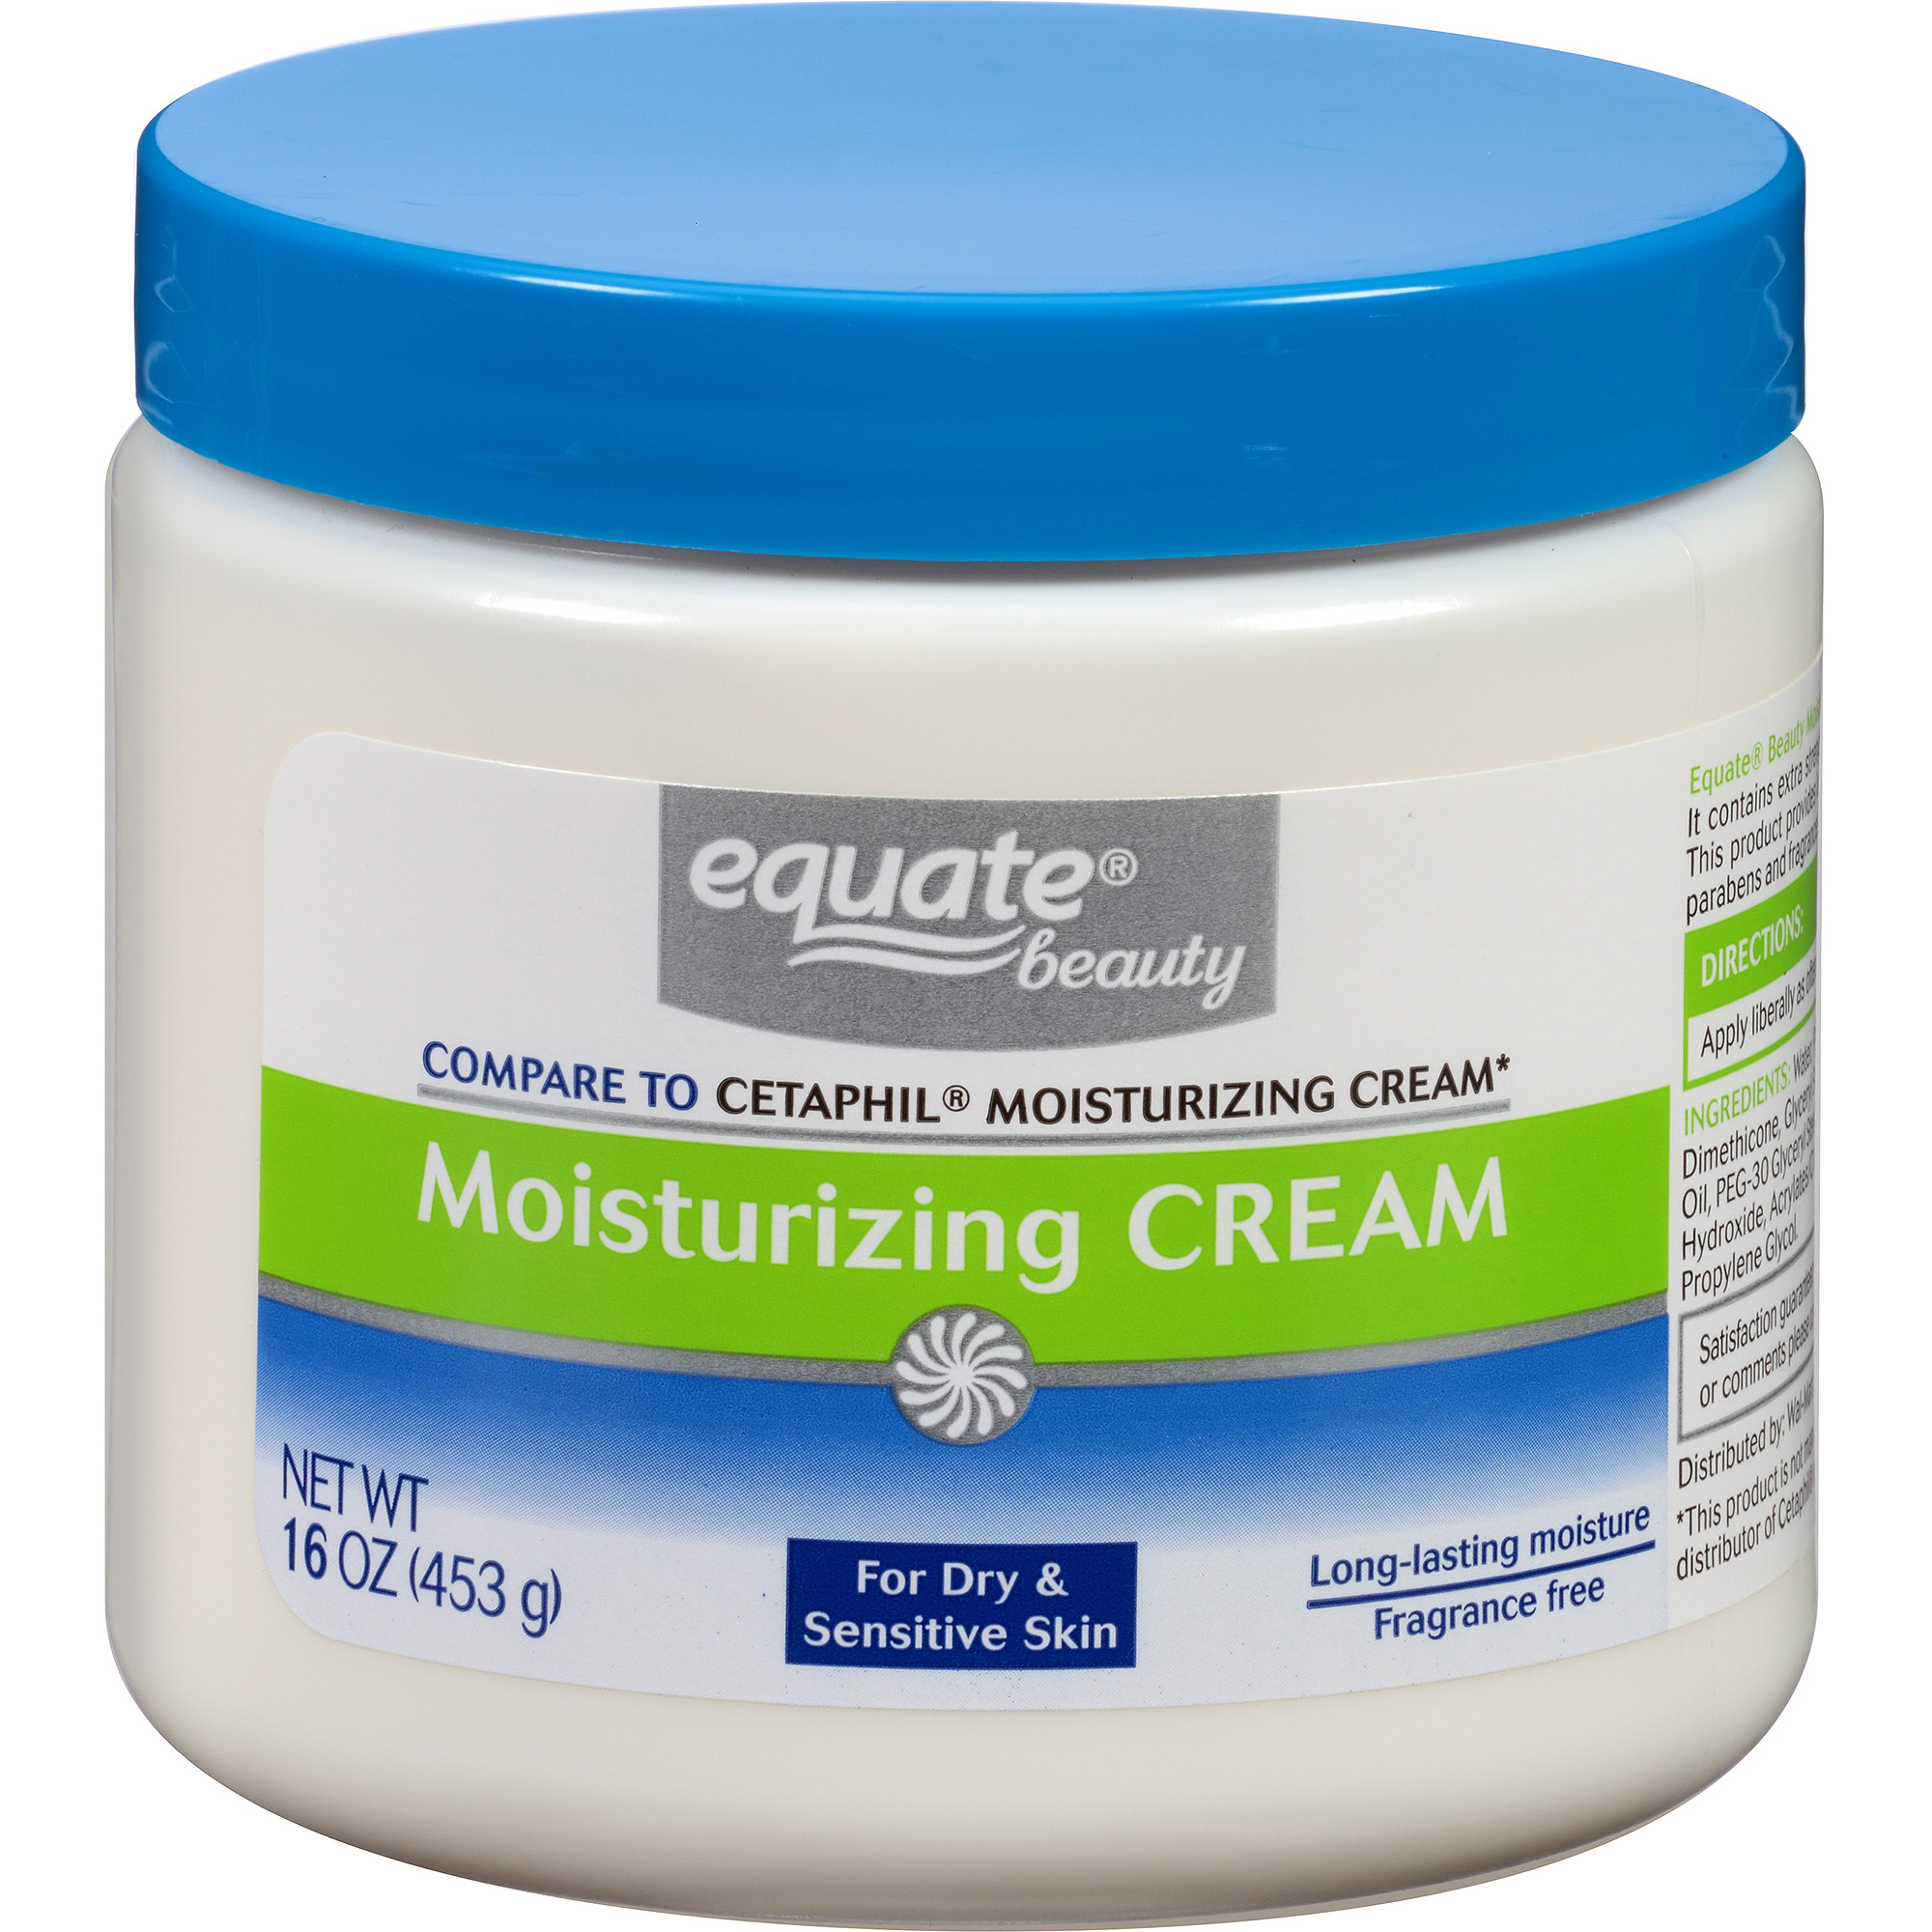 Equate Beauty Moisturizing Cream, 16 oz